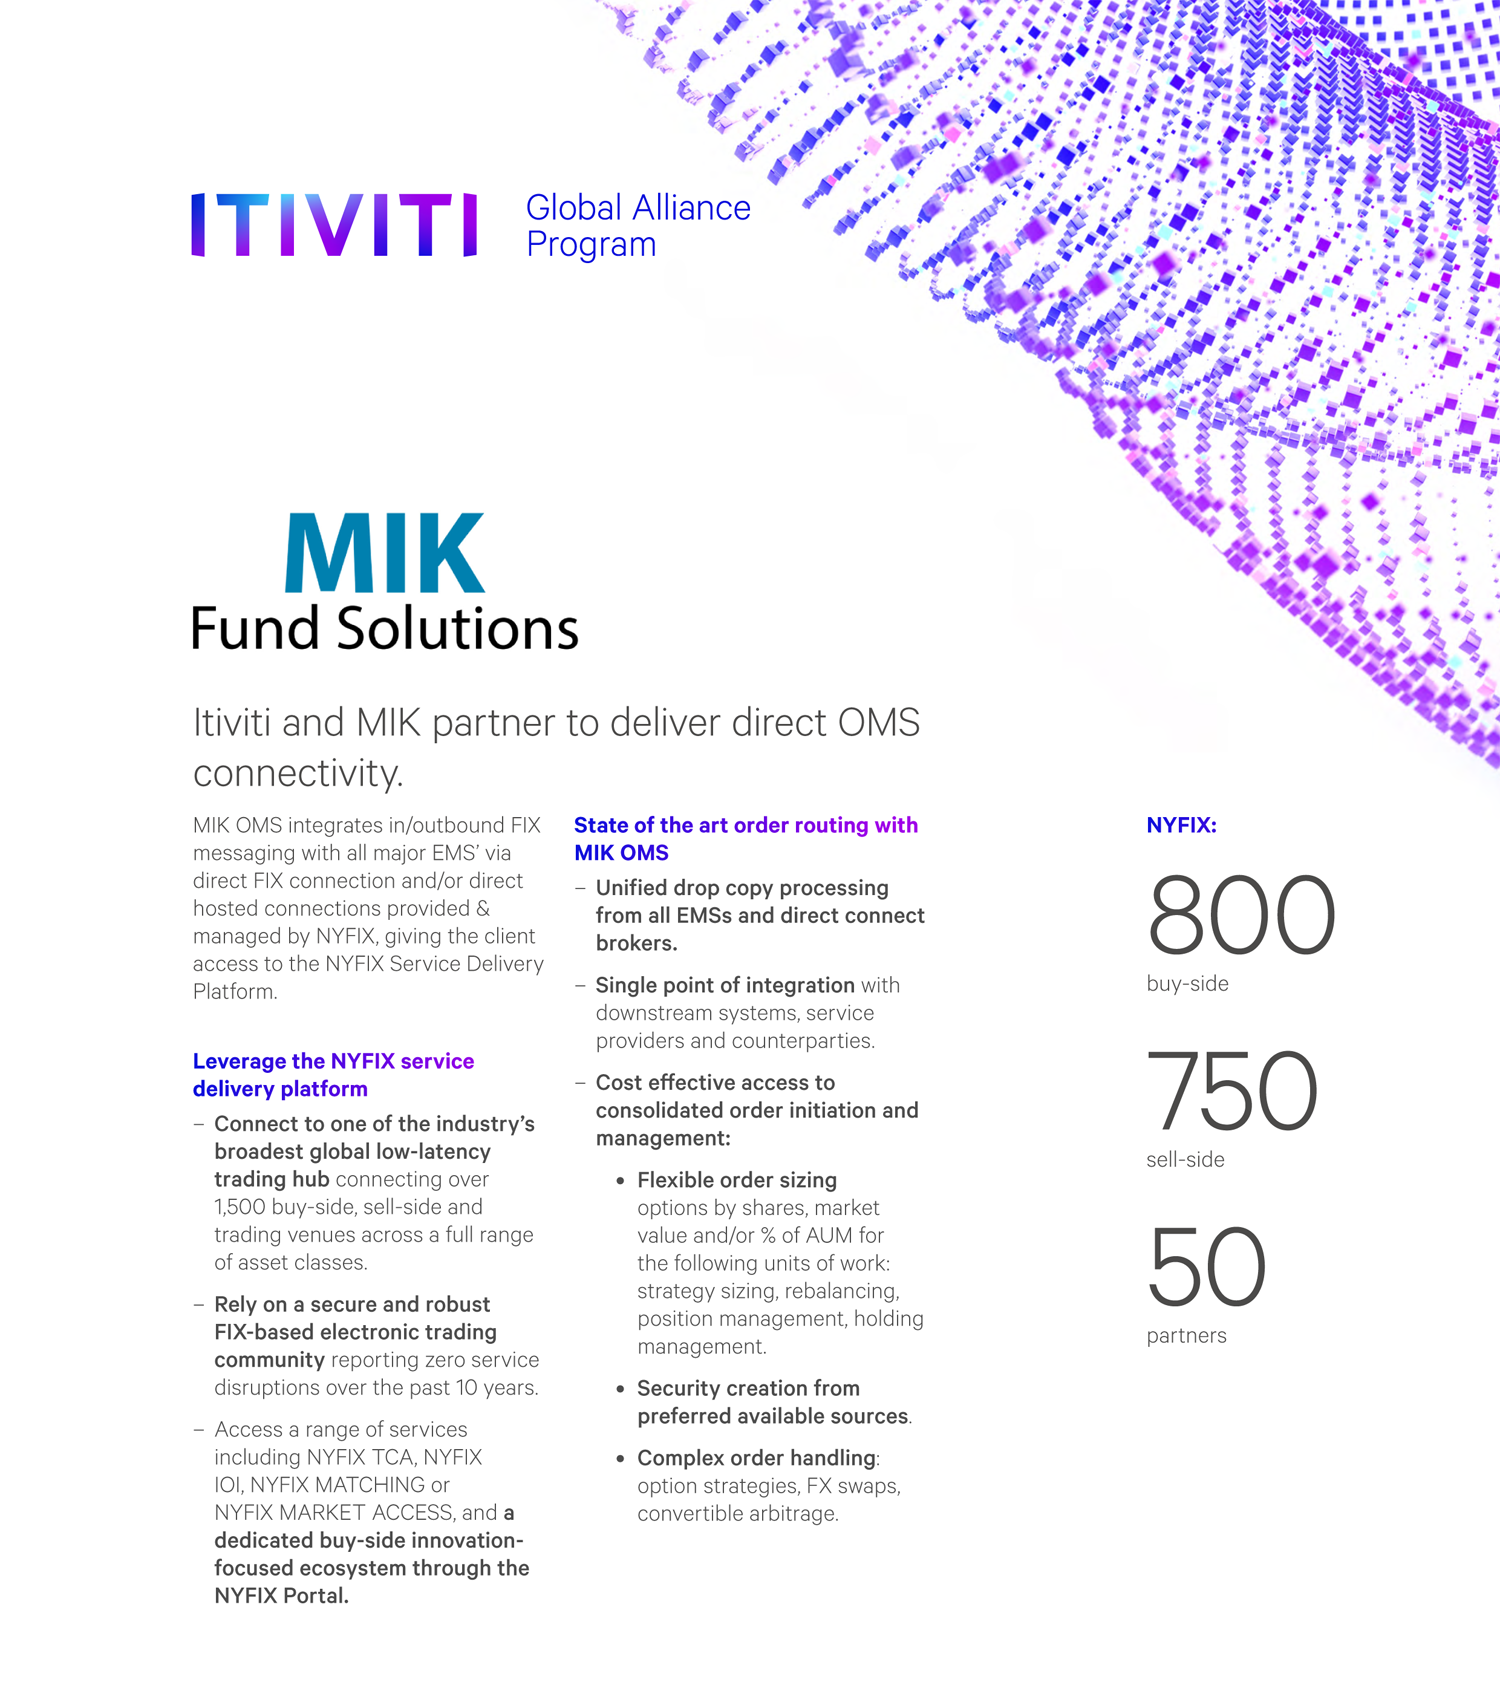 Itiviti and MIK partner to deliver direct OMS connectivity